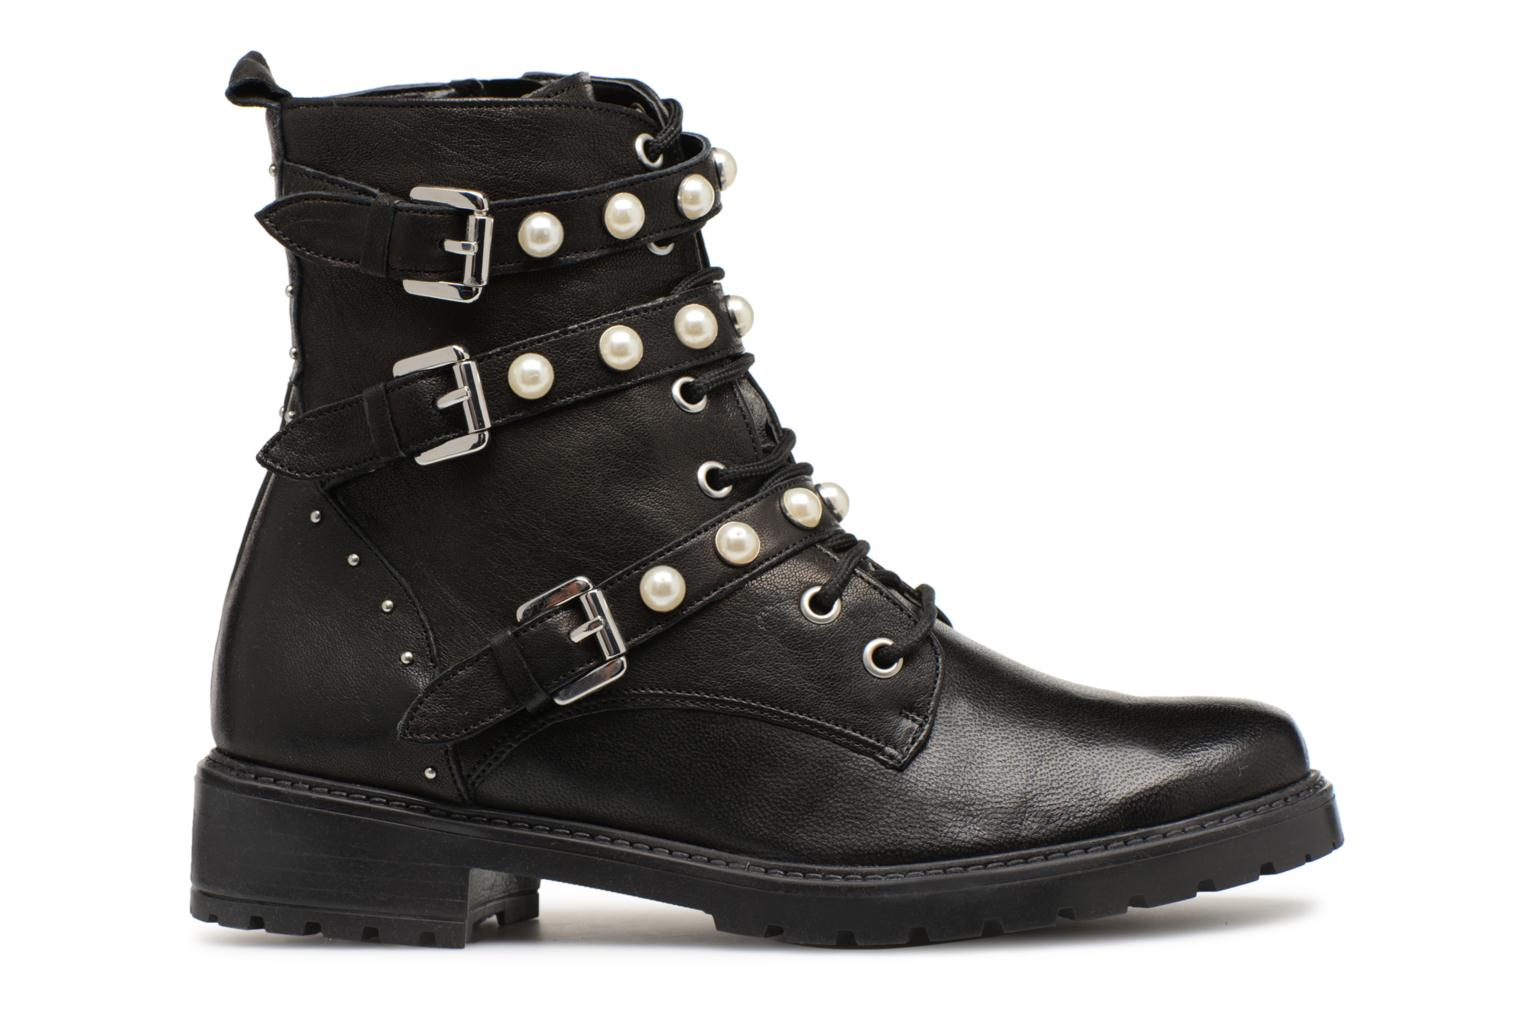 Risky London Black Black Dune Dune Leather London Leather Risky Y7gyvbf6